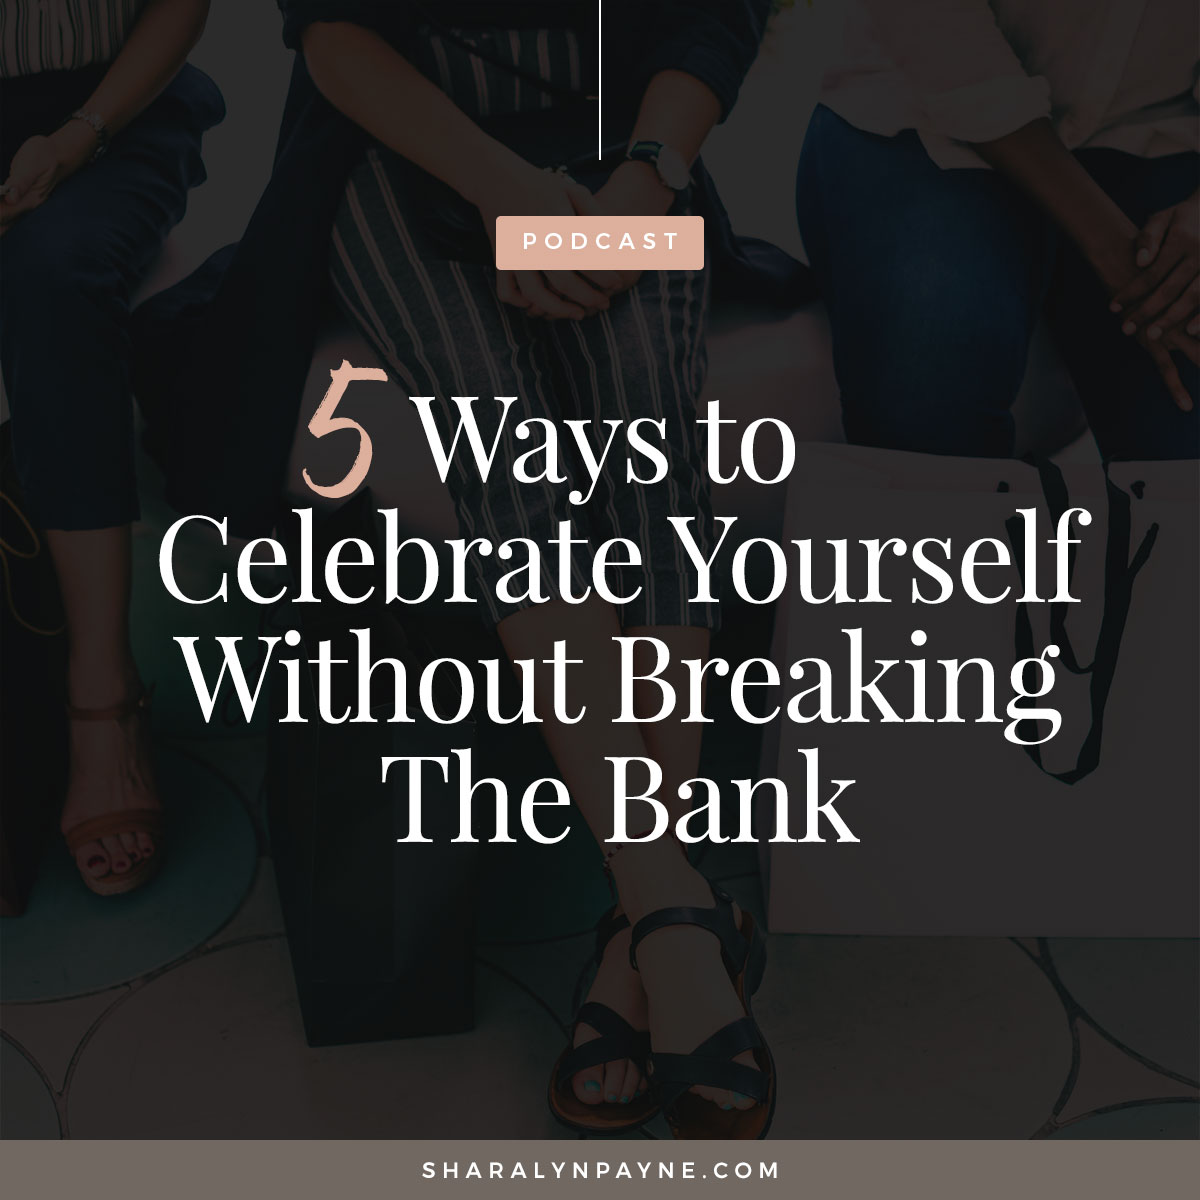 Episode 19: 5 Ways to Celebrate Yourself Without Breaking the Bank